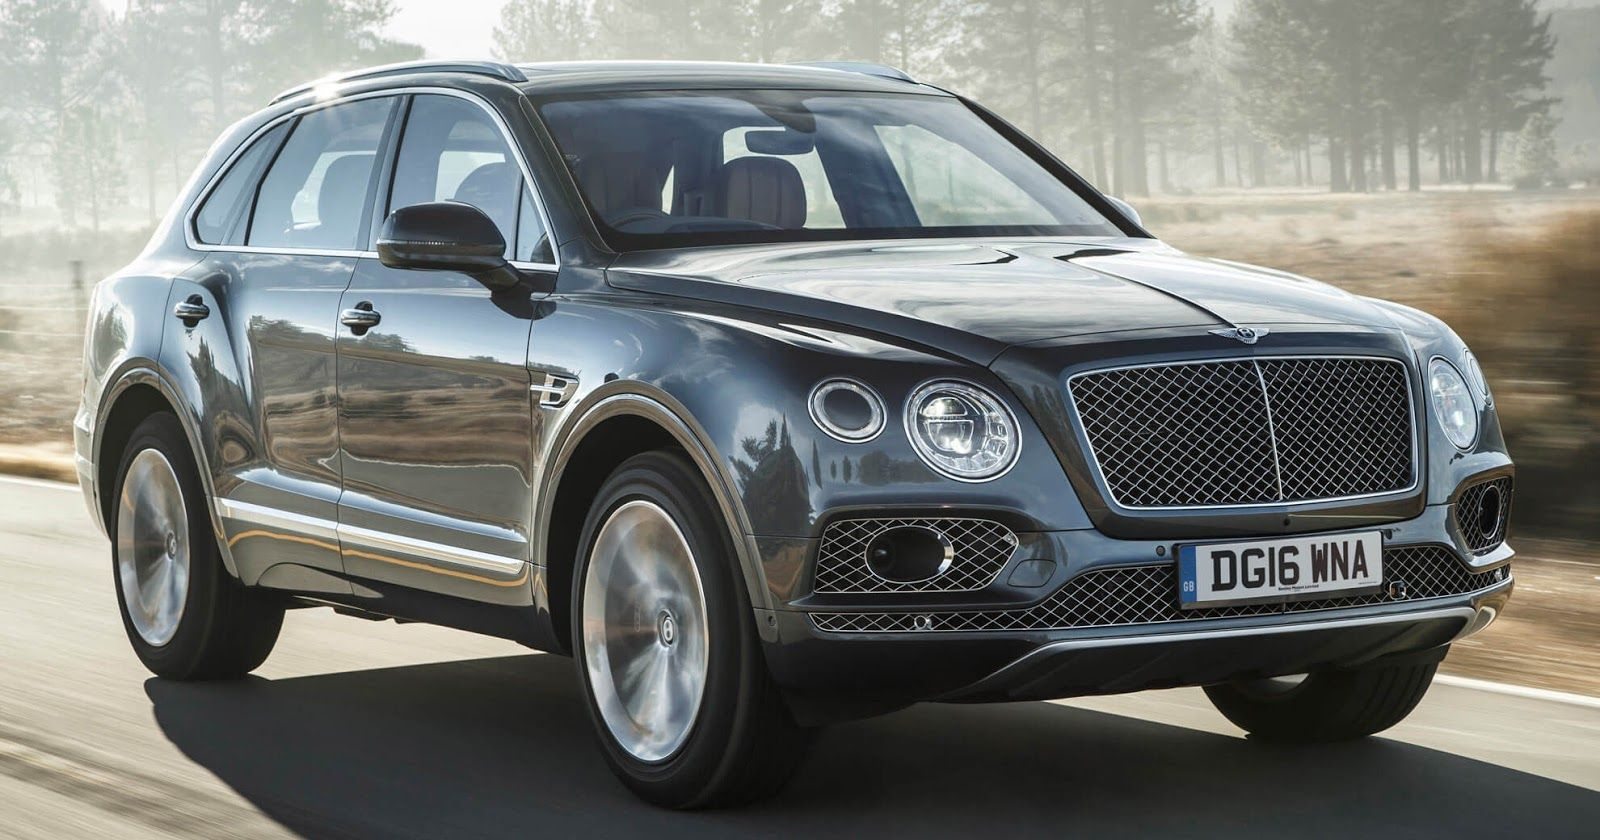 2019 Bentley Bentayga V8 To Rated At 550 HP, Could Use Cayenne Turbo